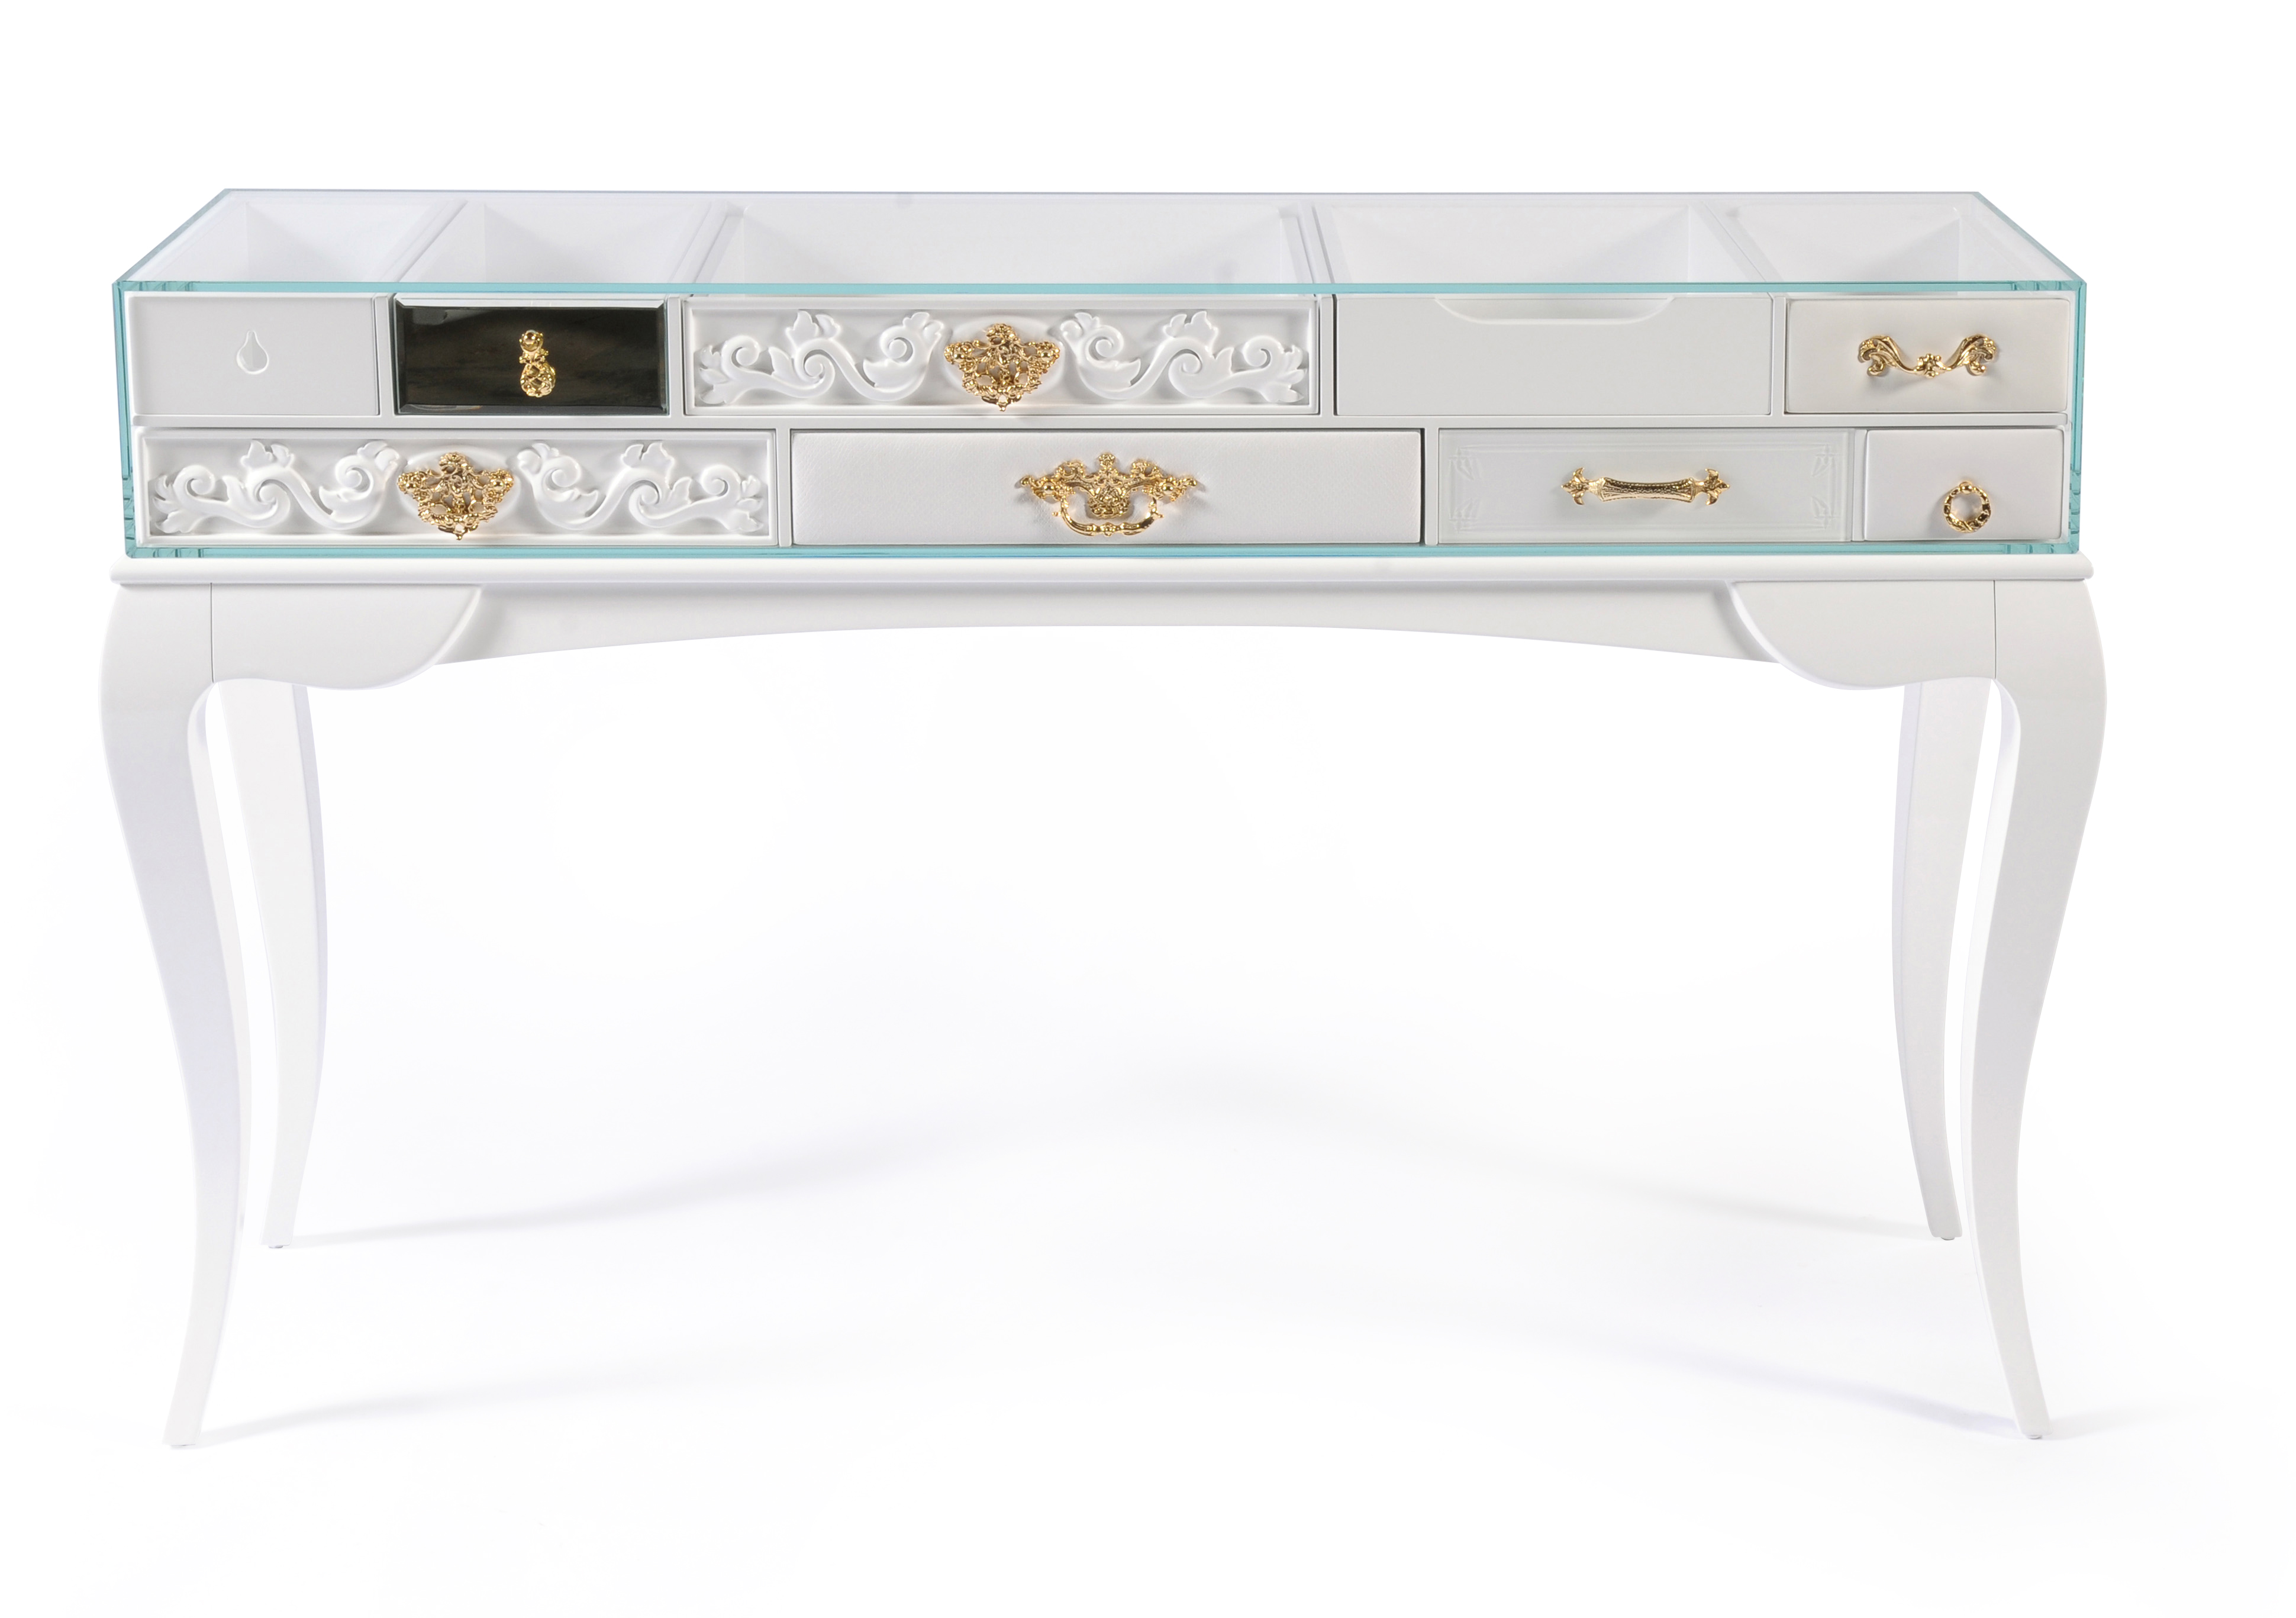 console tables Amazing Console Tables With Detailed Design 2 Amazing Console Tables With Detailed Design